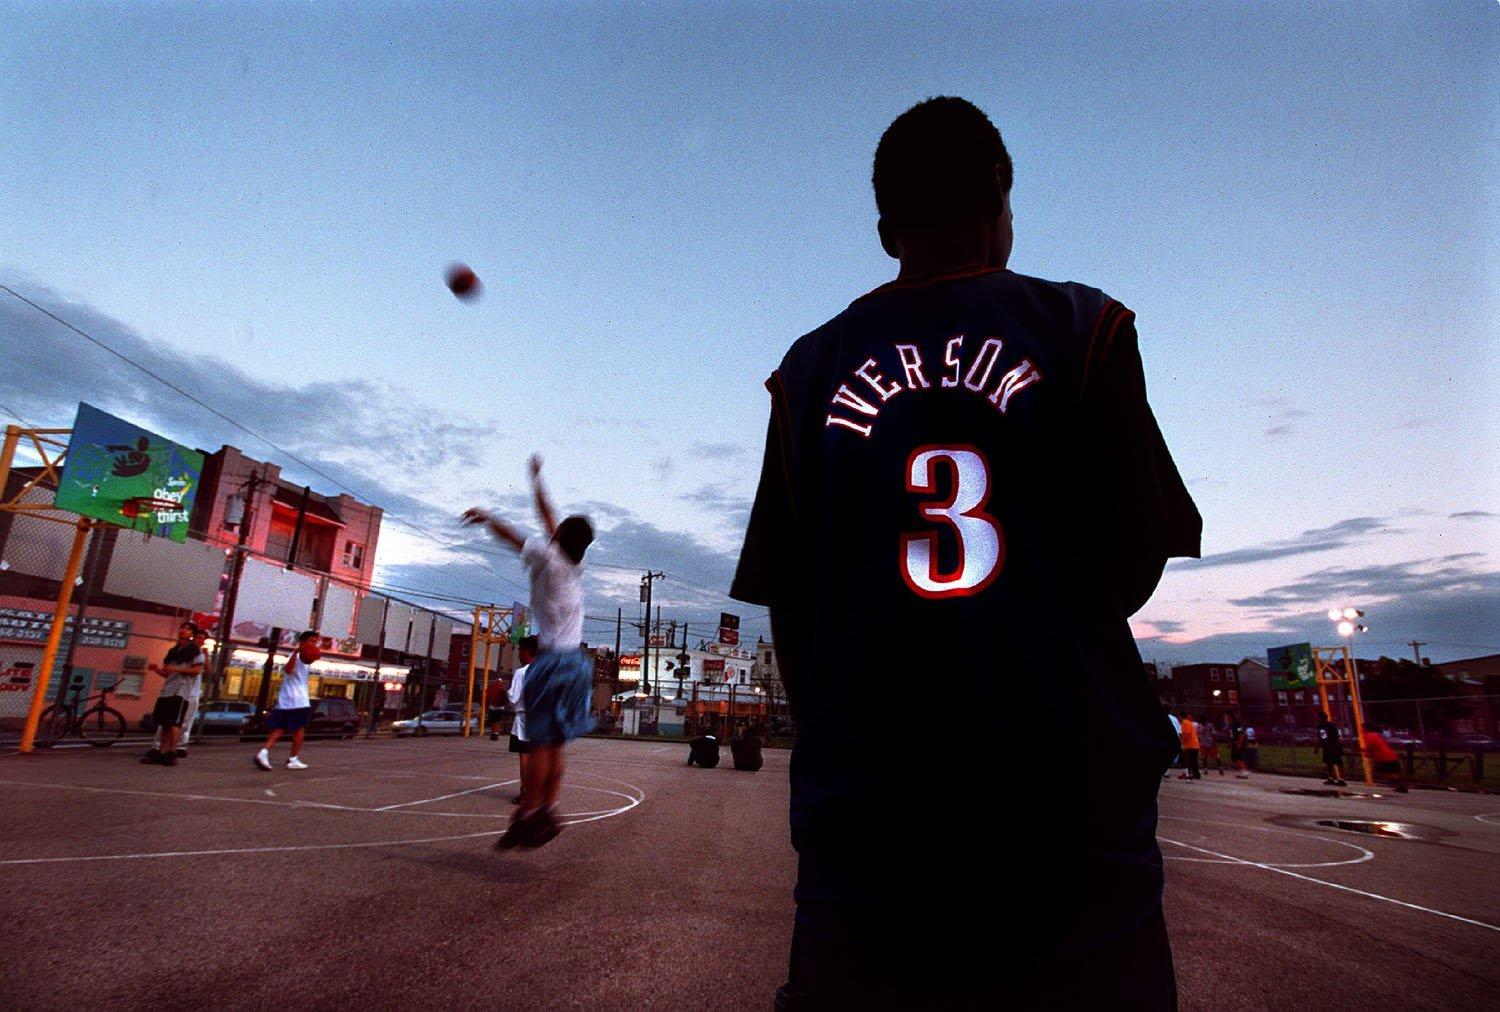 IVERSON FRENZY: Robert Trader, 16, stands on the sidelines of a Capitolo Playground basketball court in the late afternoon light of South Philadelphia waiting for the next pickup game to start. Photo taken May 30, 2001. (Adrin Snider-Newport News-Daily Press)